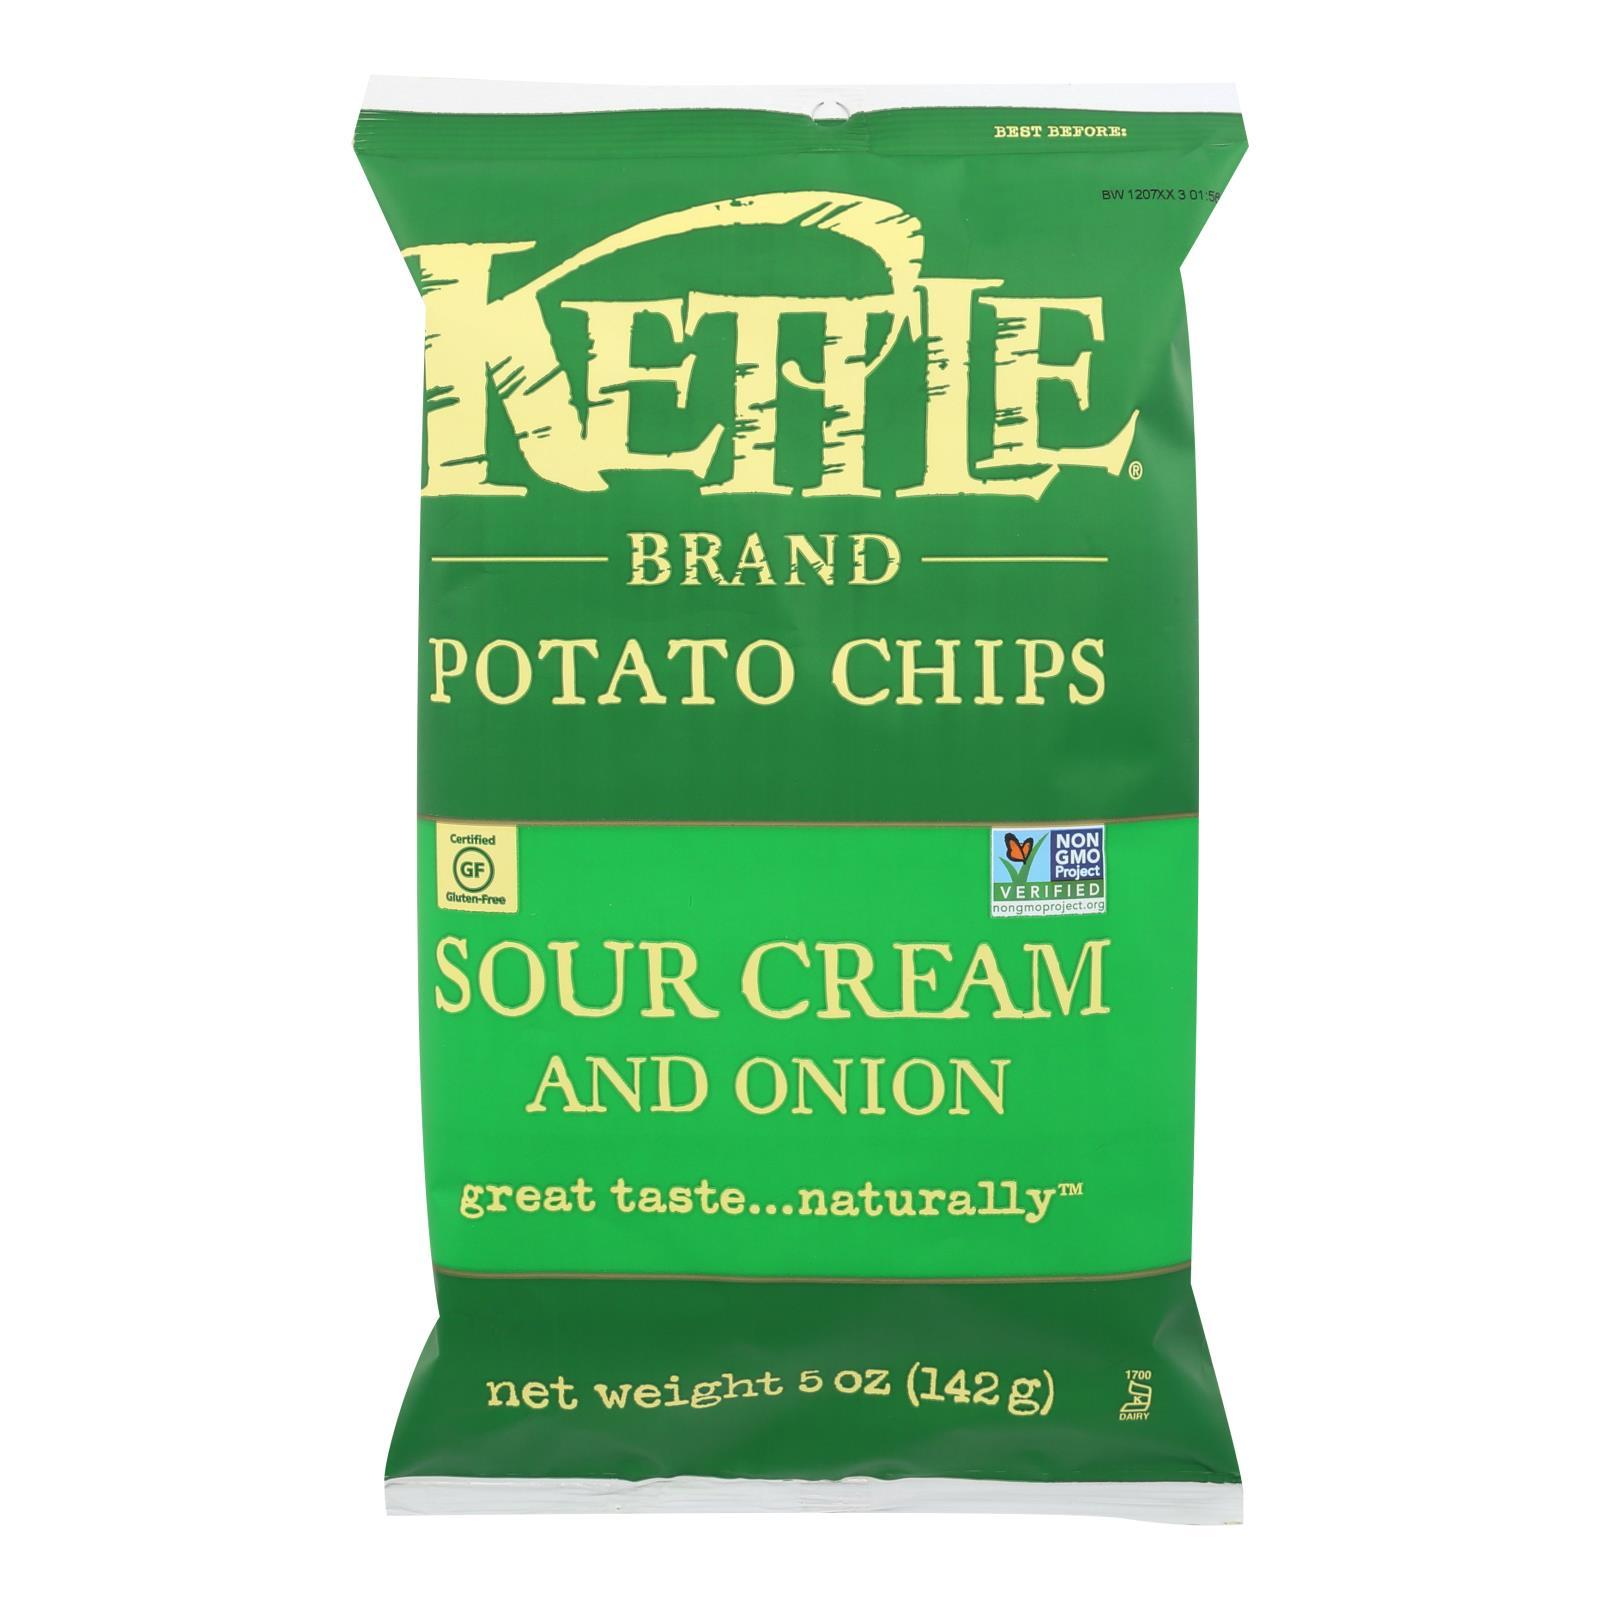 Kettle Brand Potato Chips - Sour Cream And Onion - Case Of 15 - 5 Oz. - BeeGreen